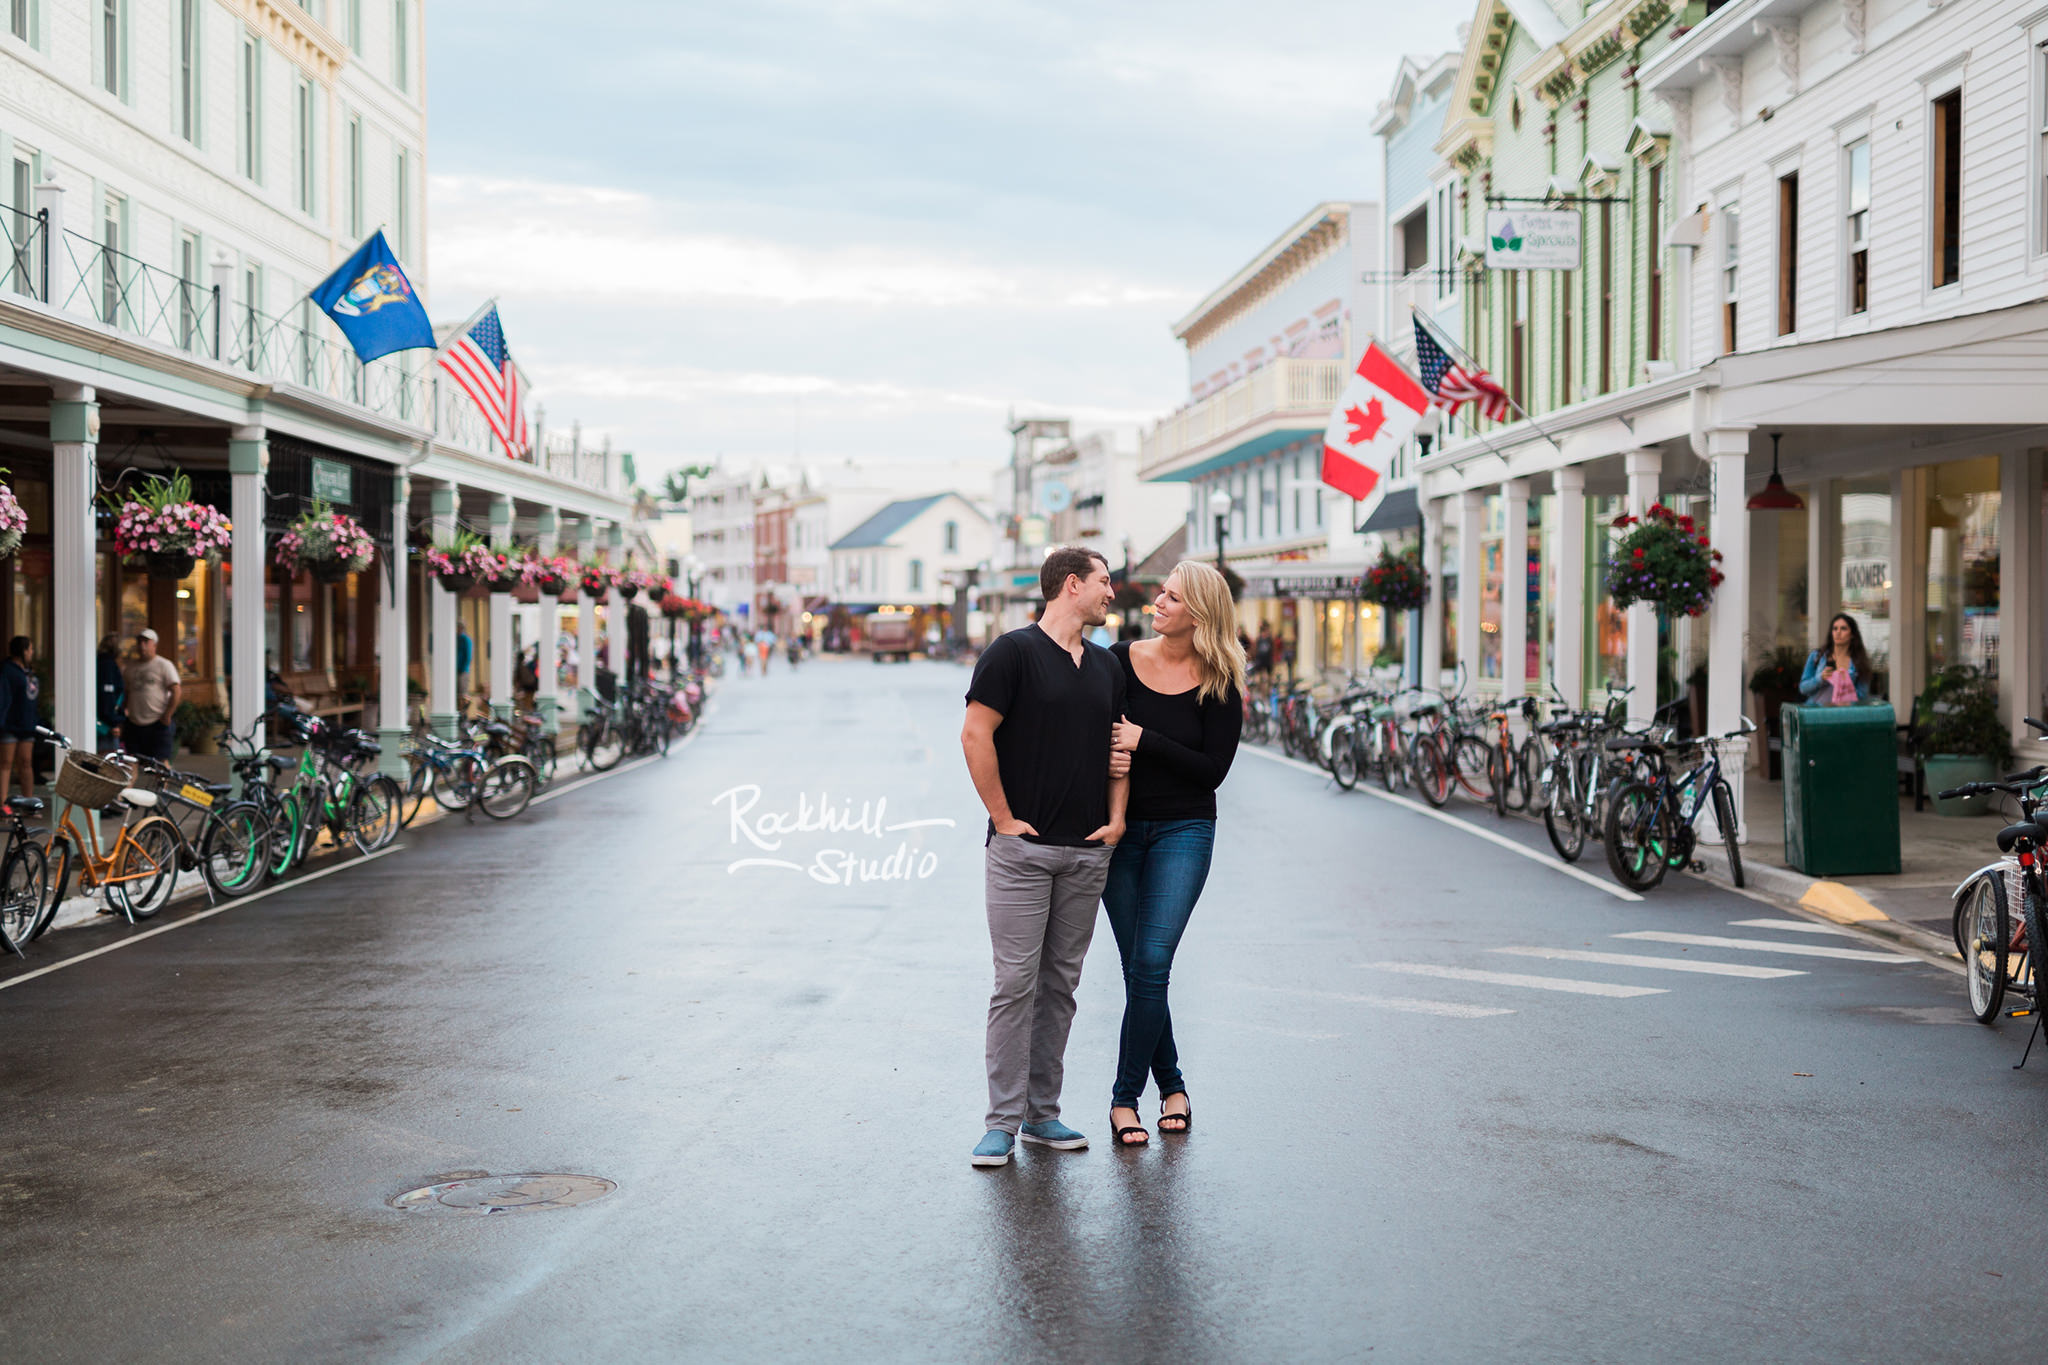 Mackinac Island Engagement, downtown main street, Traverse City wedding photographer Rockhill Studio